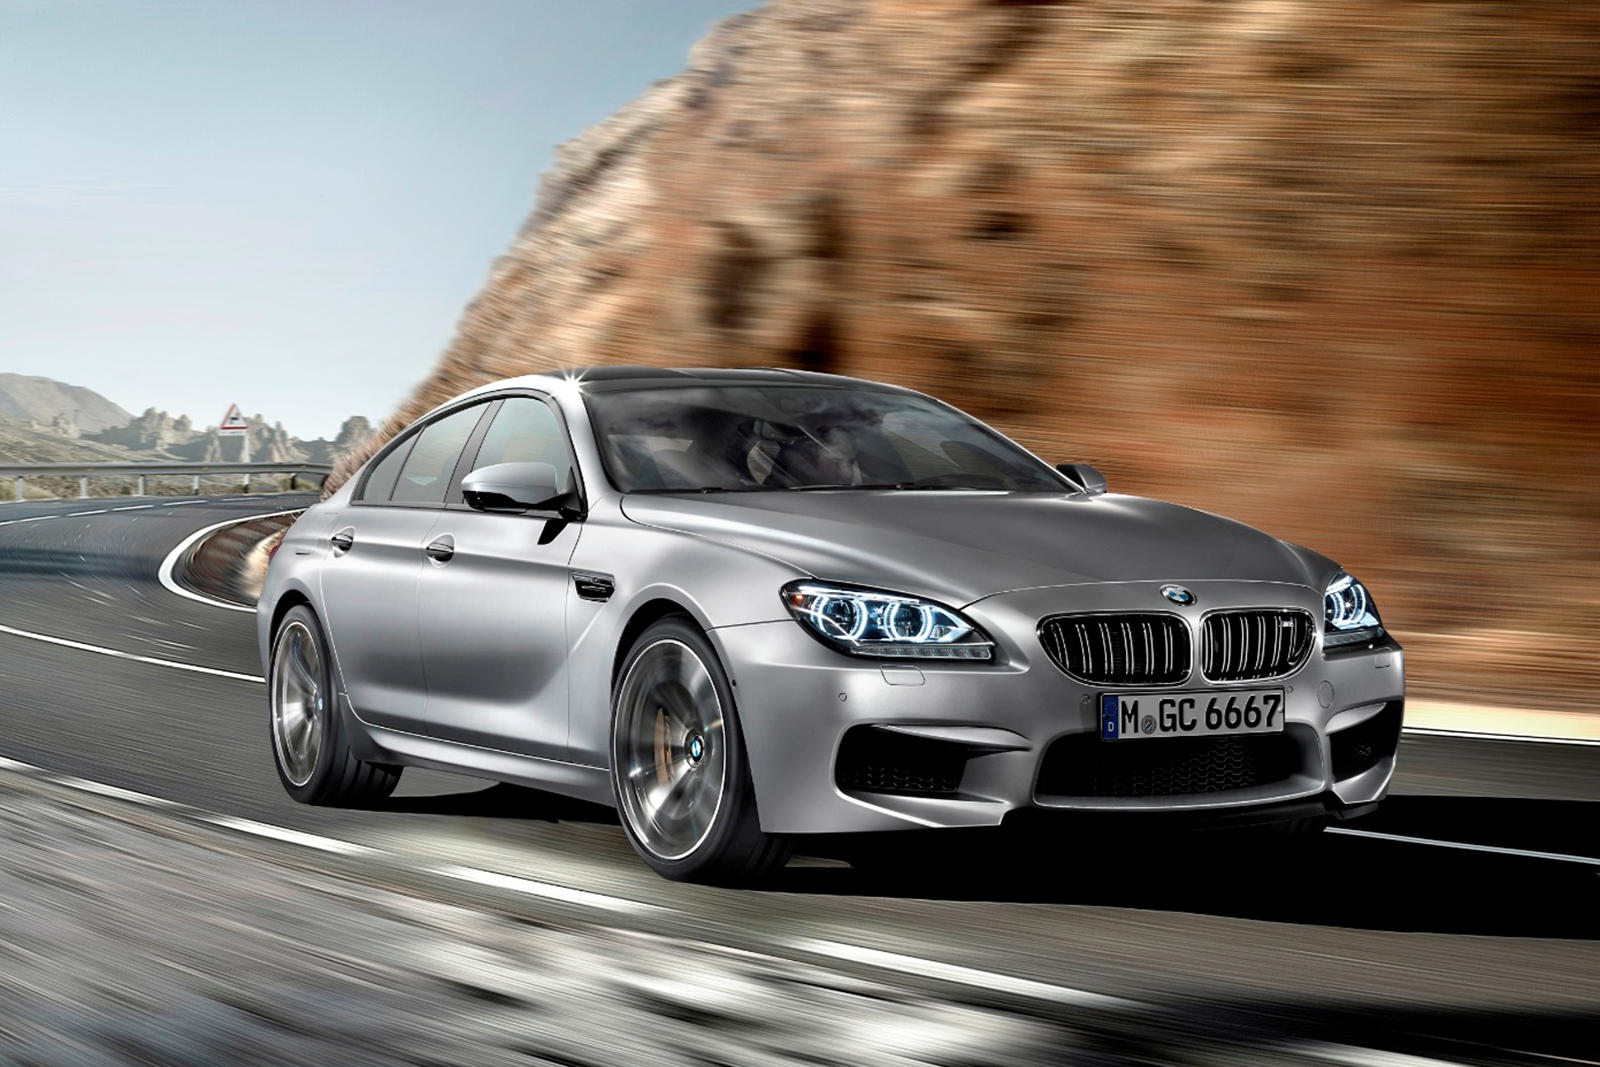 2019 Bmw M6 Gran Coupe Review Trims Specs Price New Interior Features Exterior Design And Specifications Carbuzz